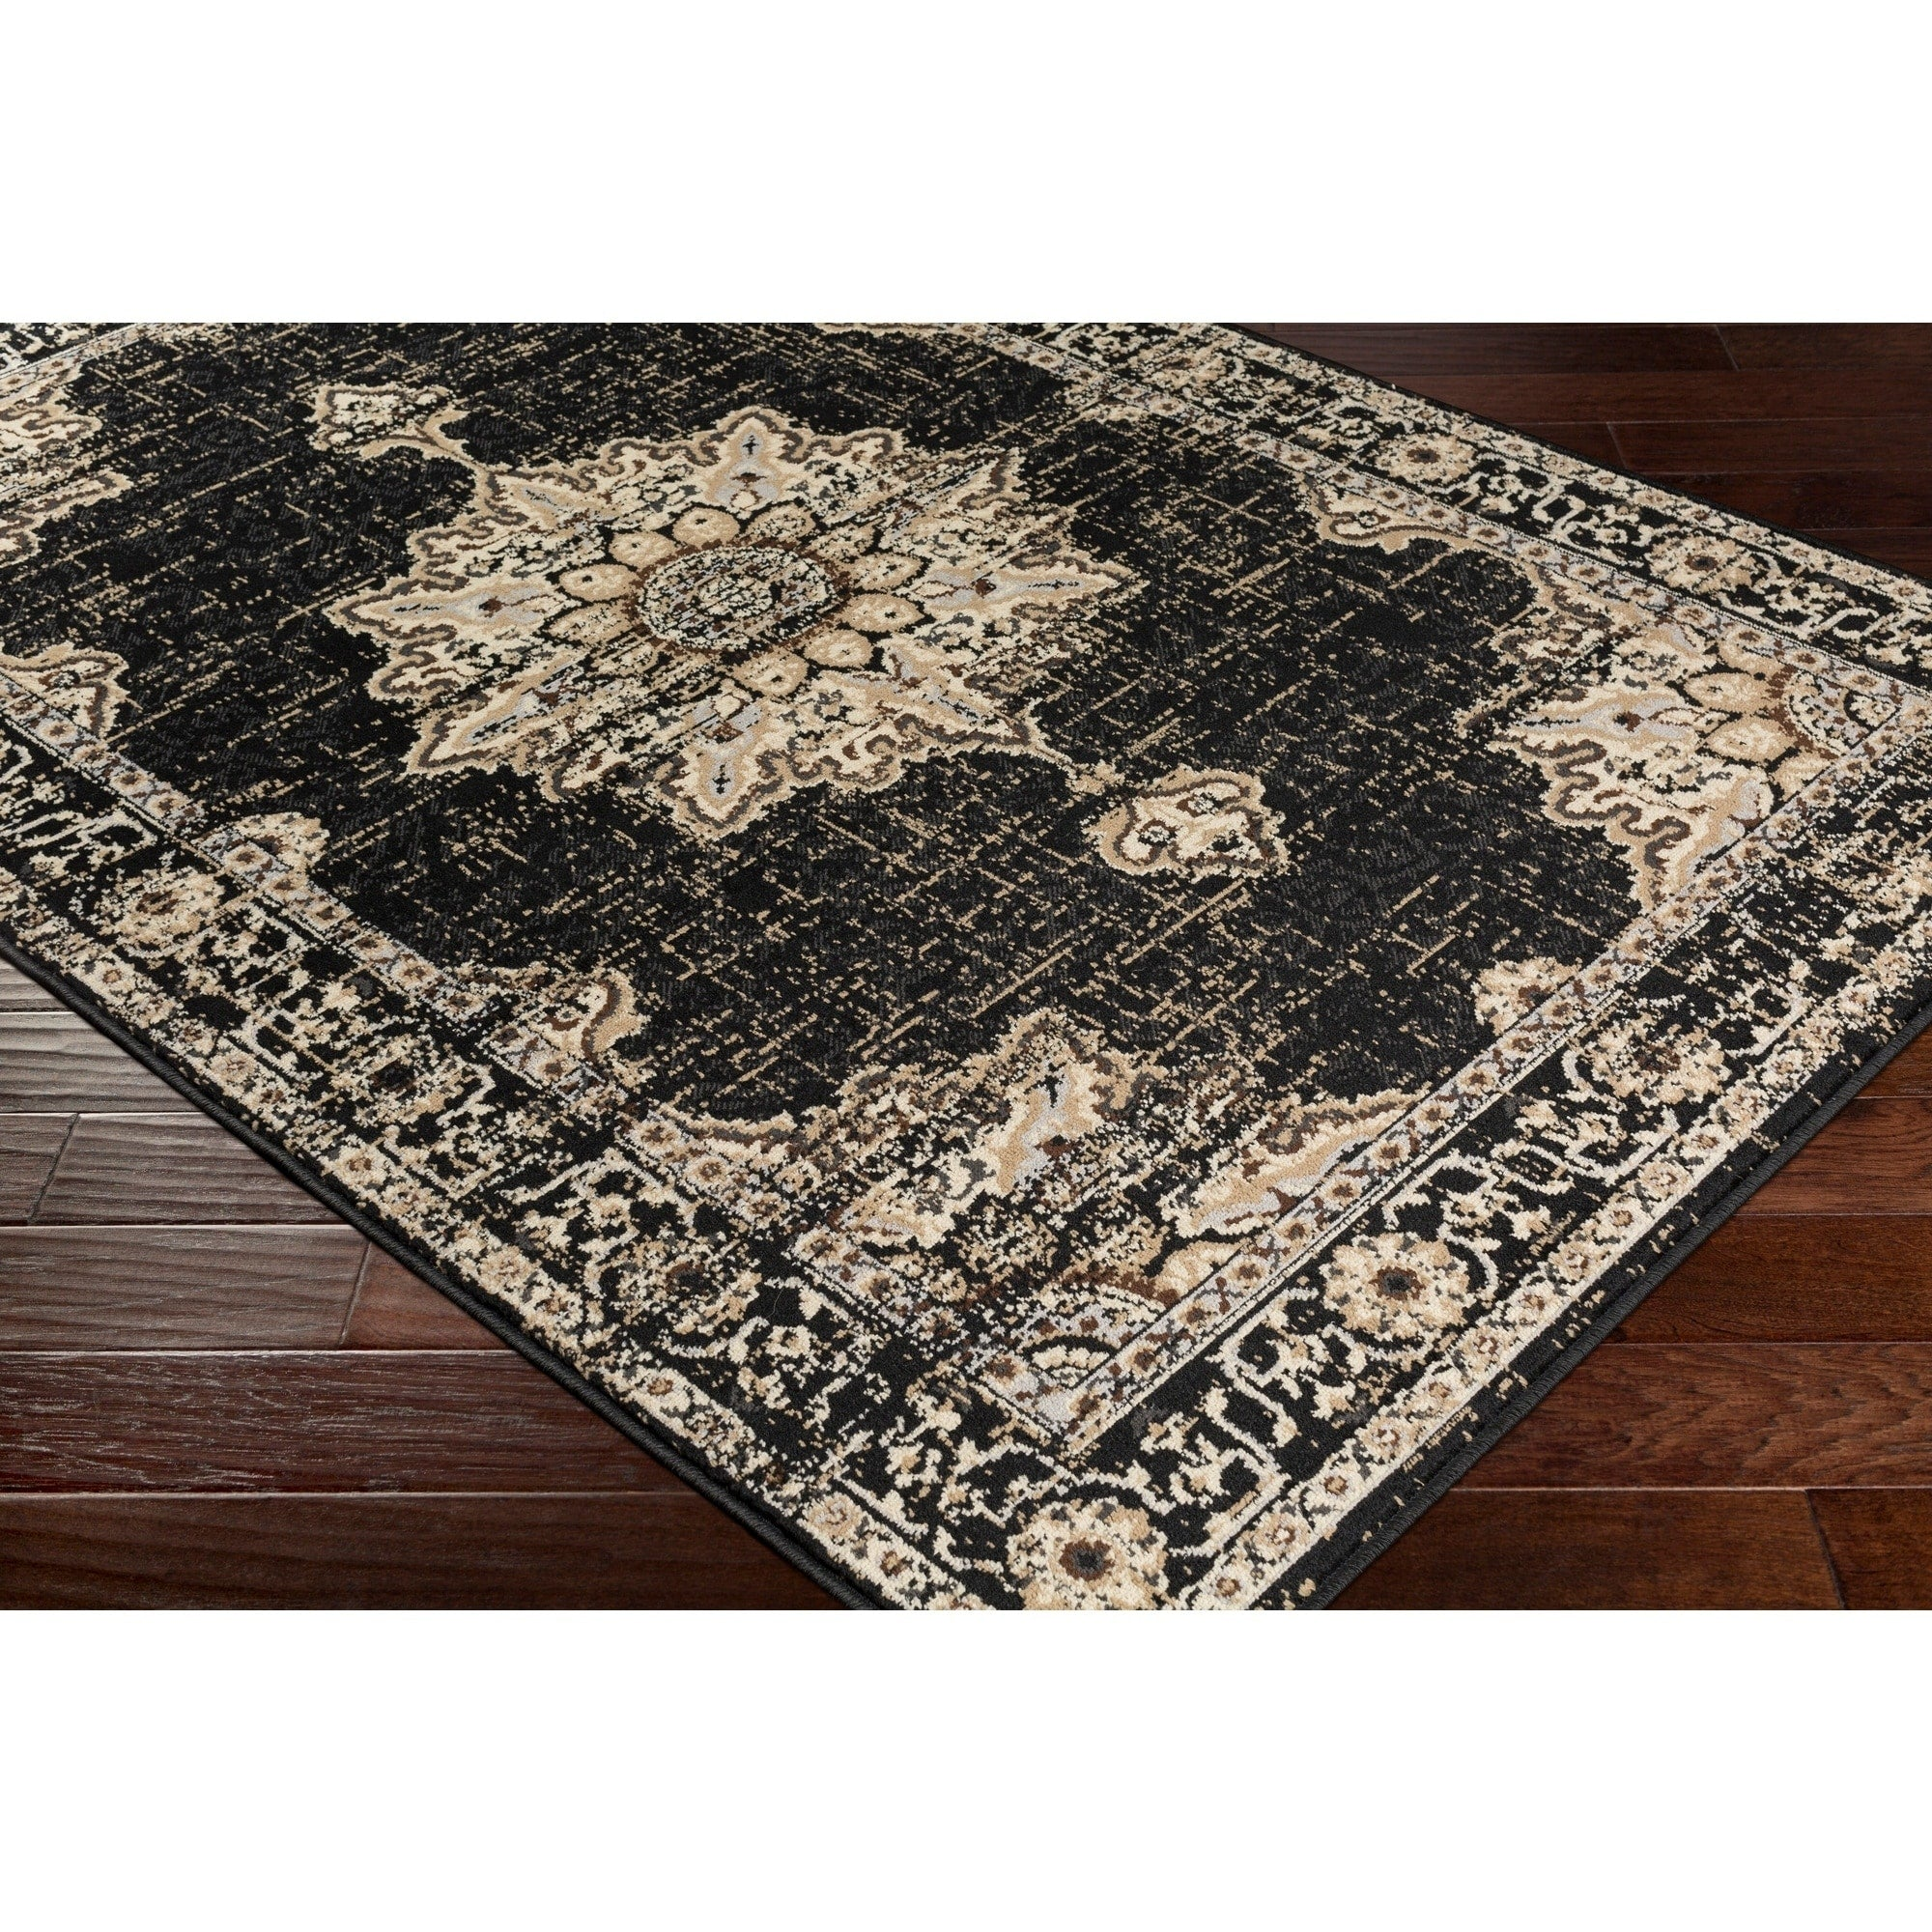 Traditional Medallion Distressed Black Beige Area Rug Modern Rugs And Decor